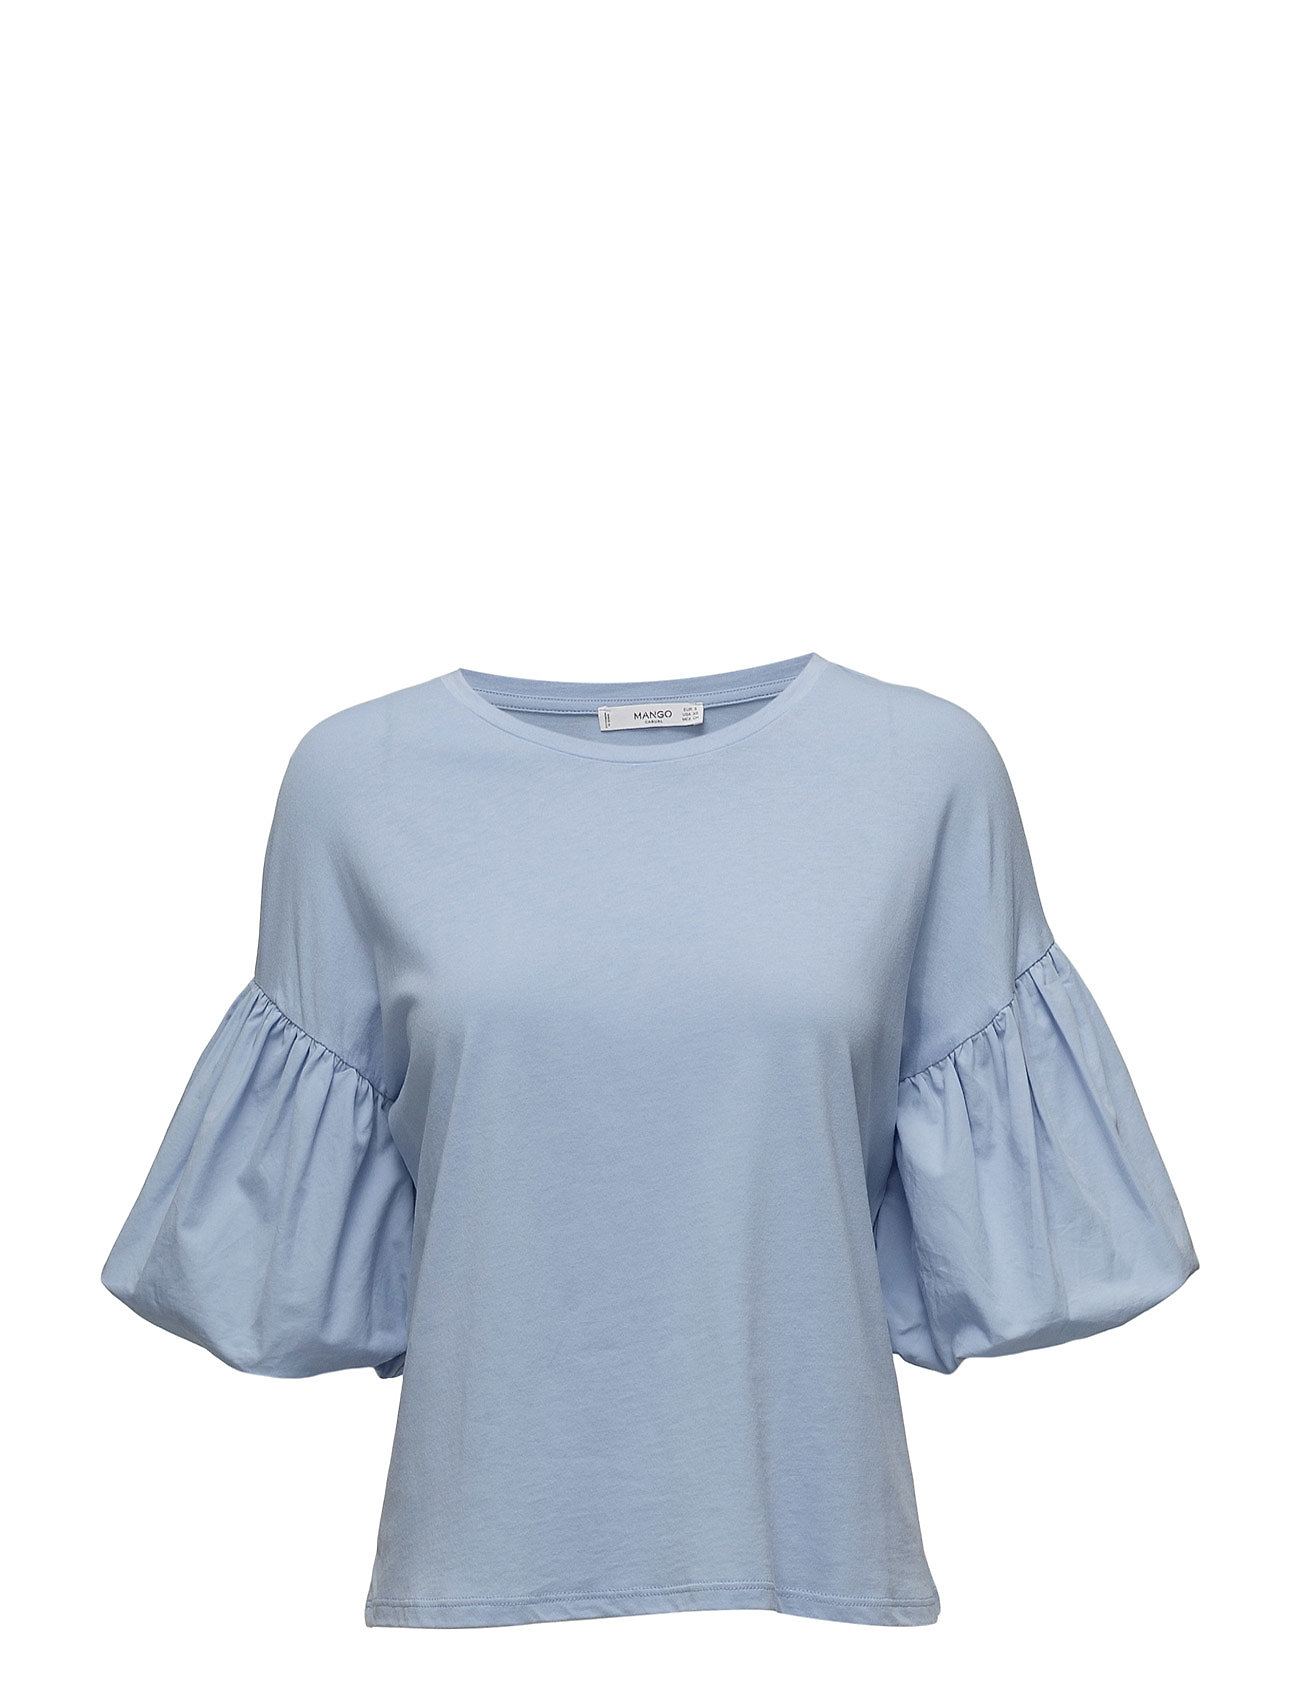 Image of Puffed Sleeves T-Shirt (2604978323)